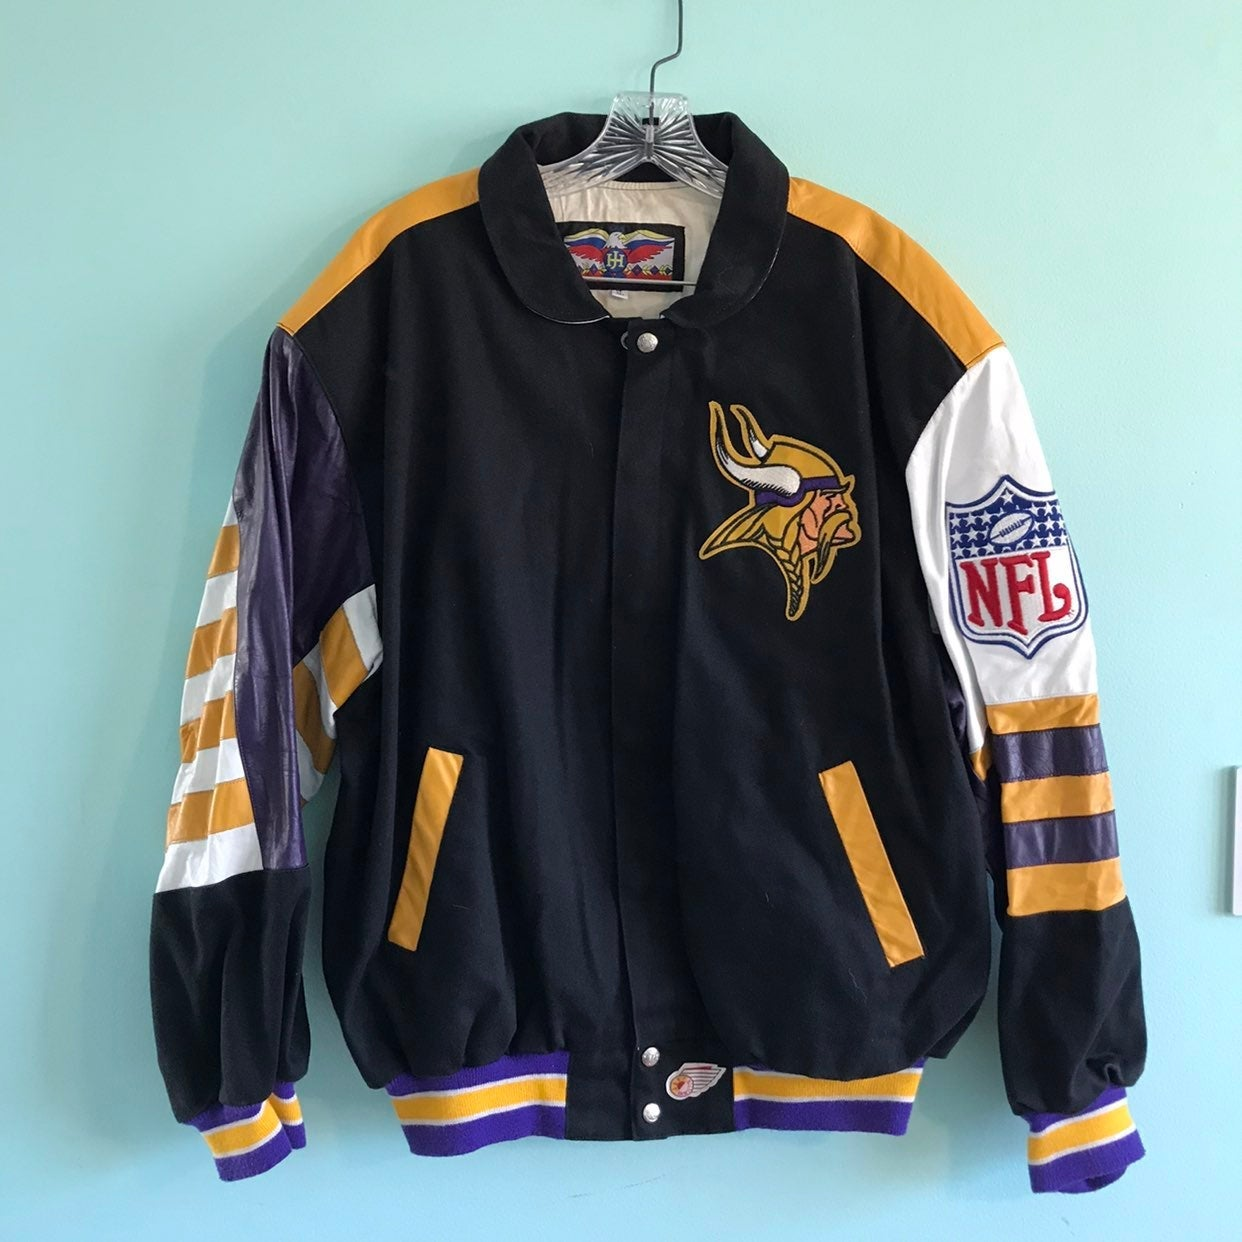 Minnesota Vikings NFL jacket RARE XL